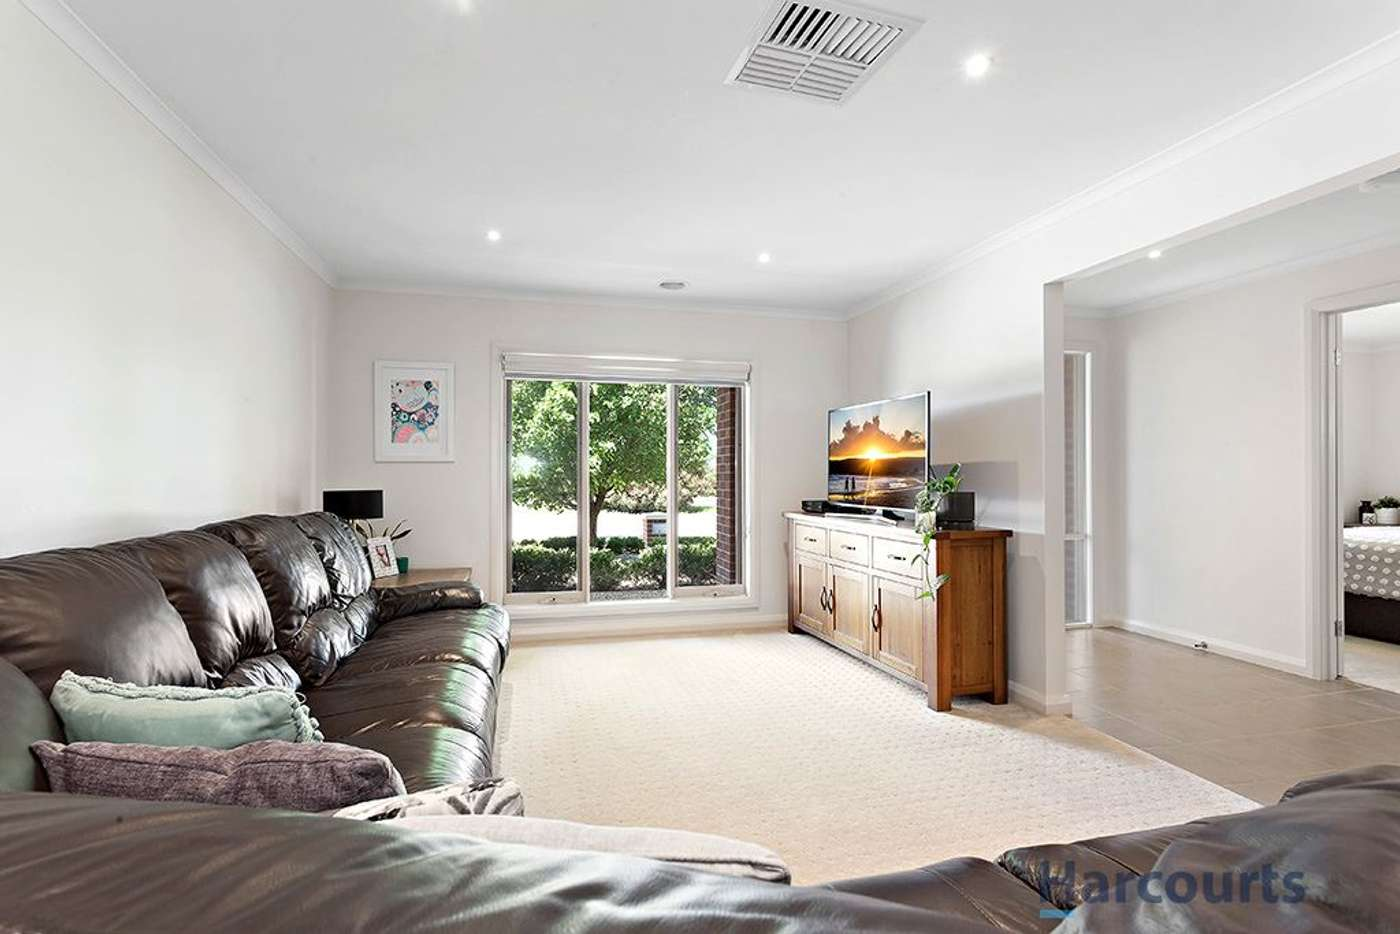 Fifth view of Homely house listing, 23 Howe Street, Miners Rest VIC 3352